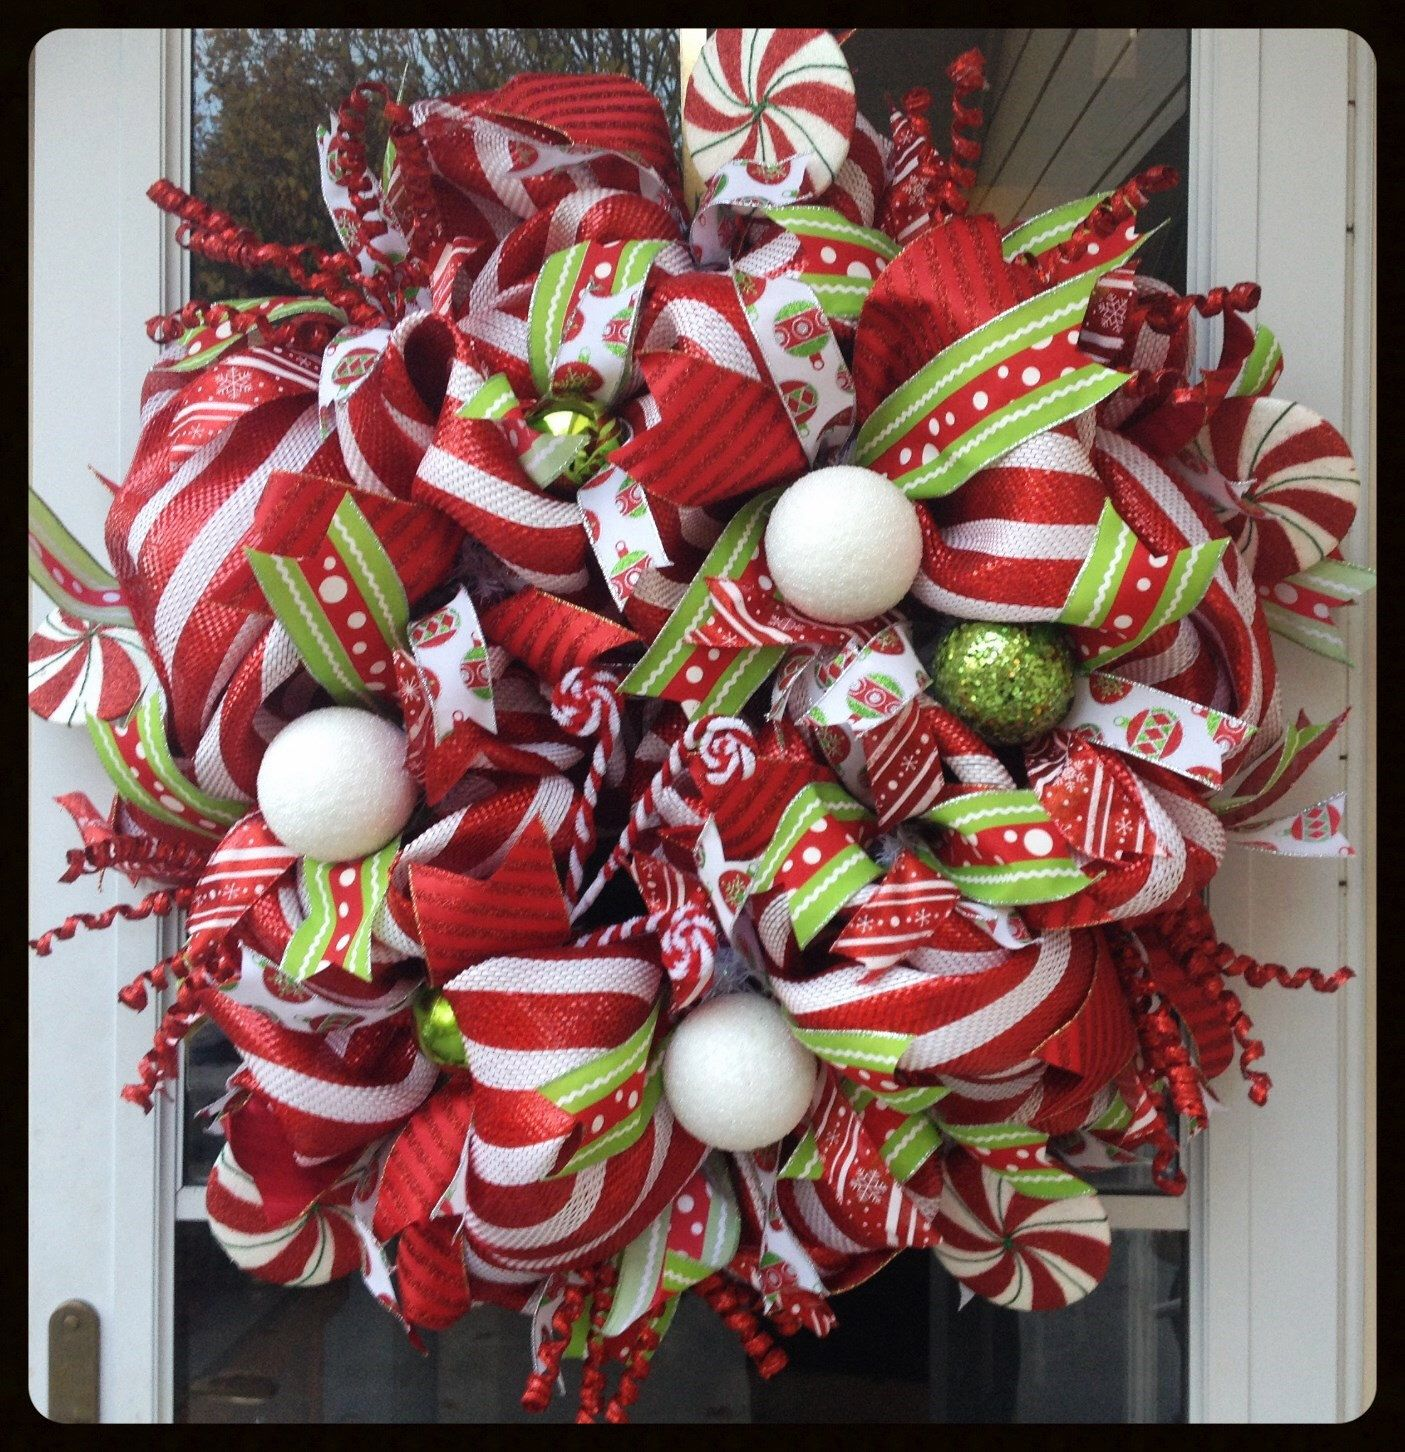 Candy Cane Lane Decorations Extra Large Red And White Candy Cane Wreath  Candy Cane Lane